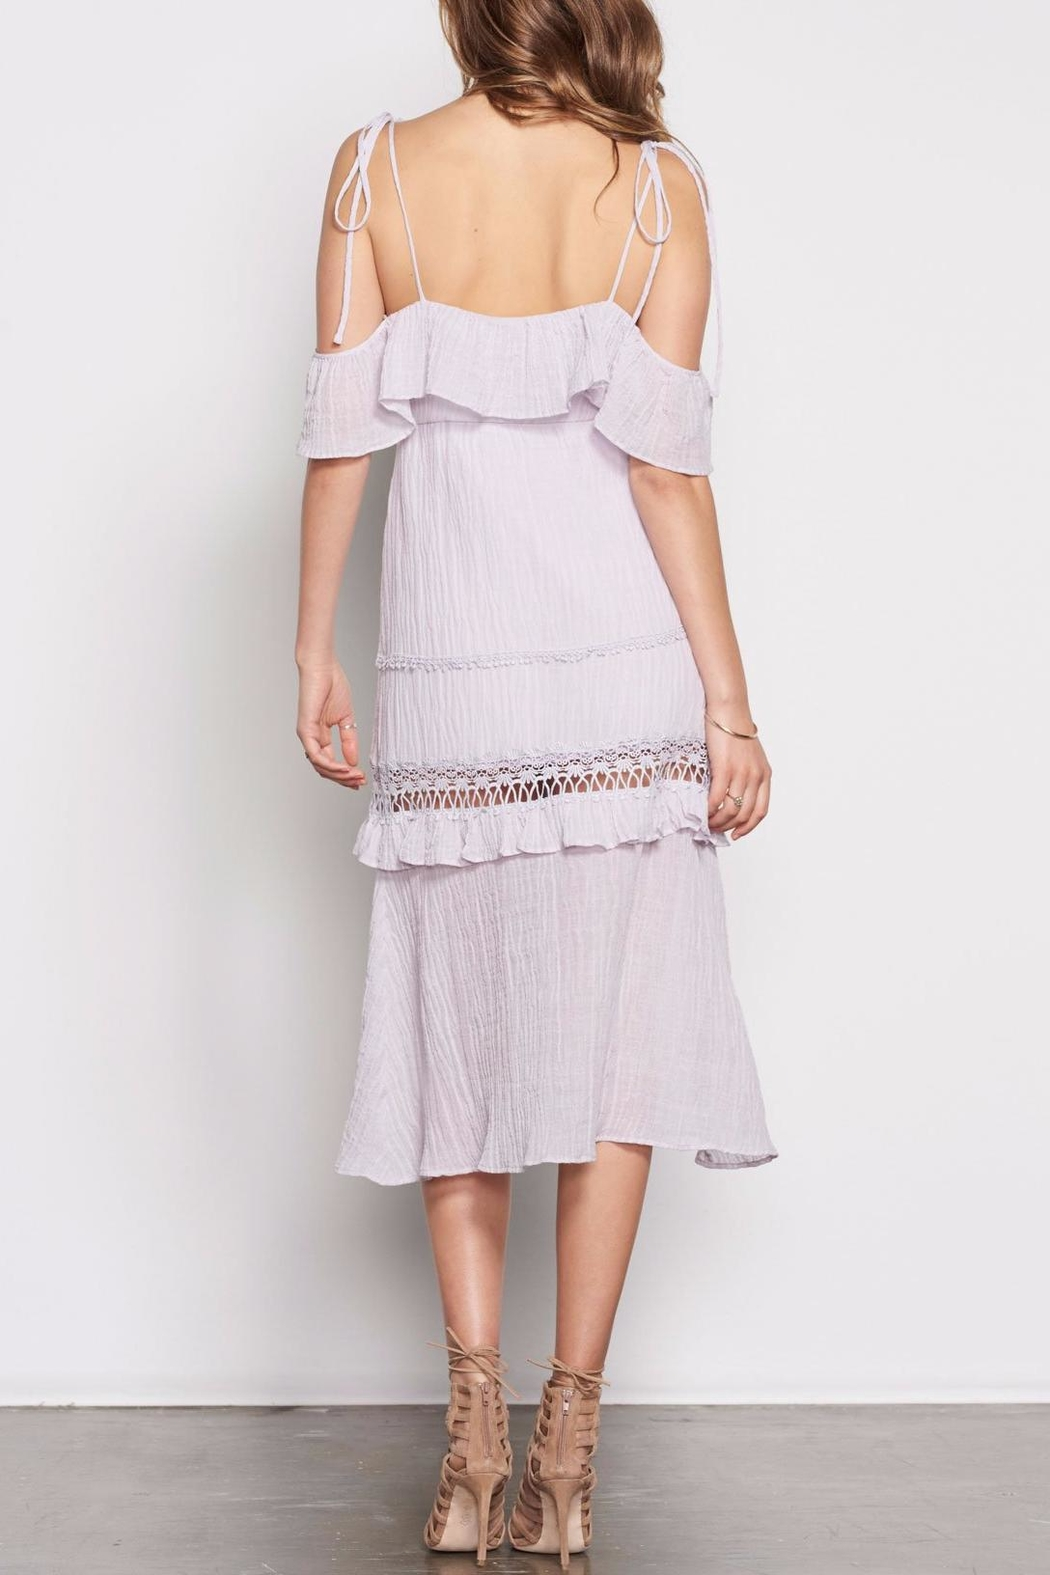 Stevie May Nonchalant Midi Dress - Side Cropped Image